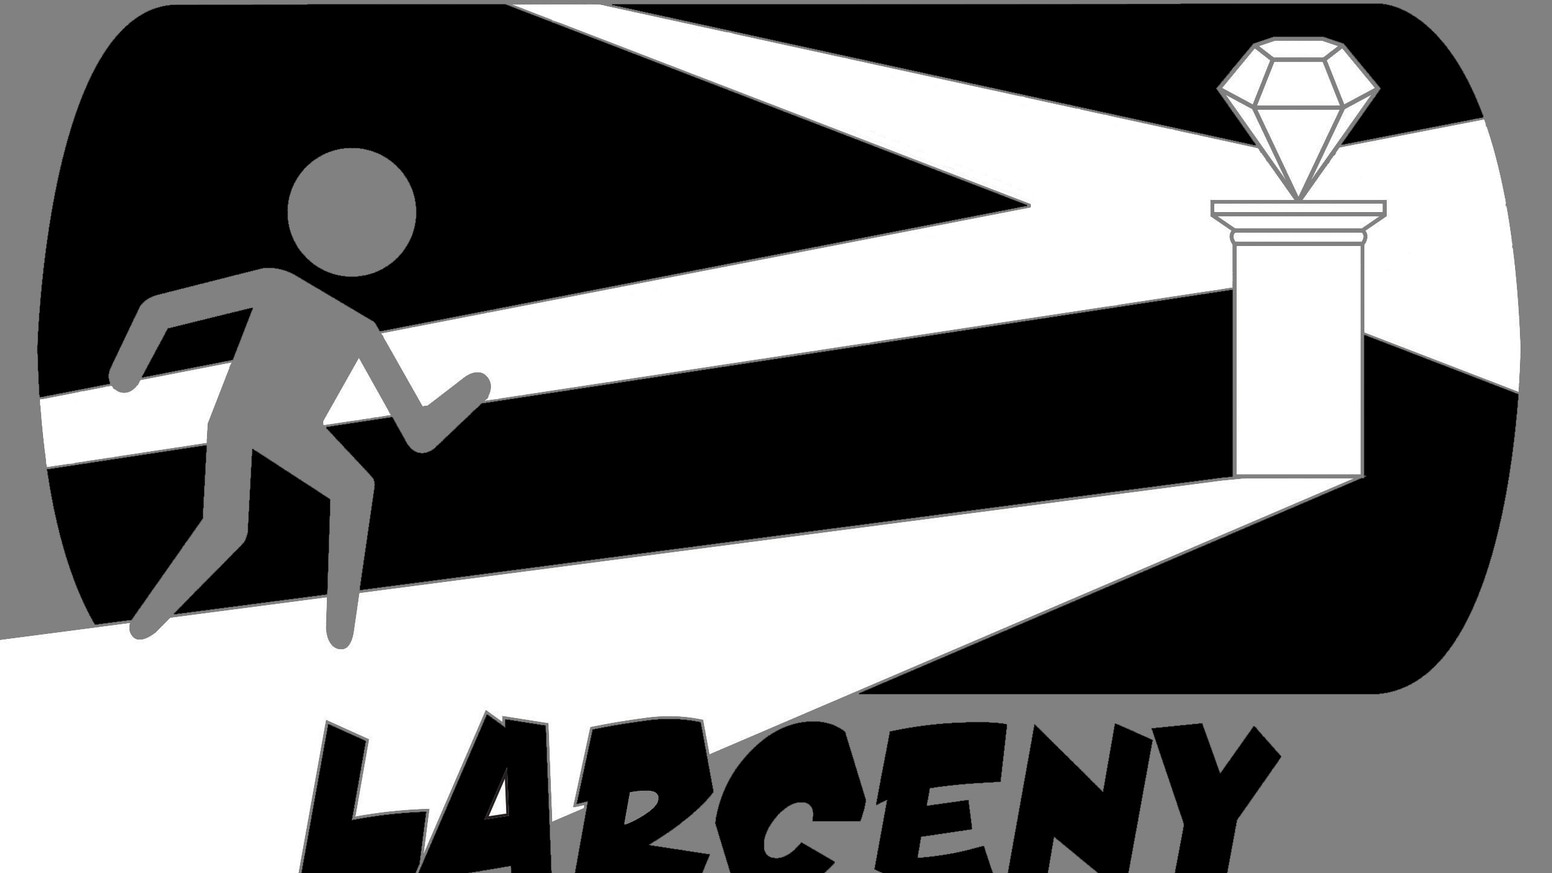 Can you plan the perfect heist? Larceny is a fast paced card game for 3+ players. Gather your crew and steal the score of a lifetime!